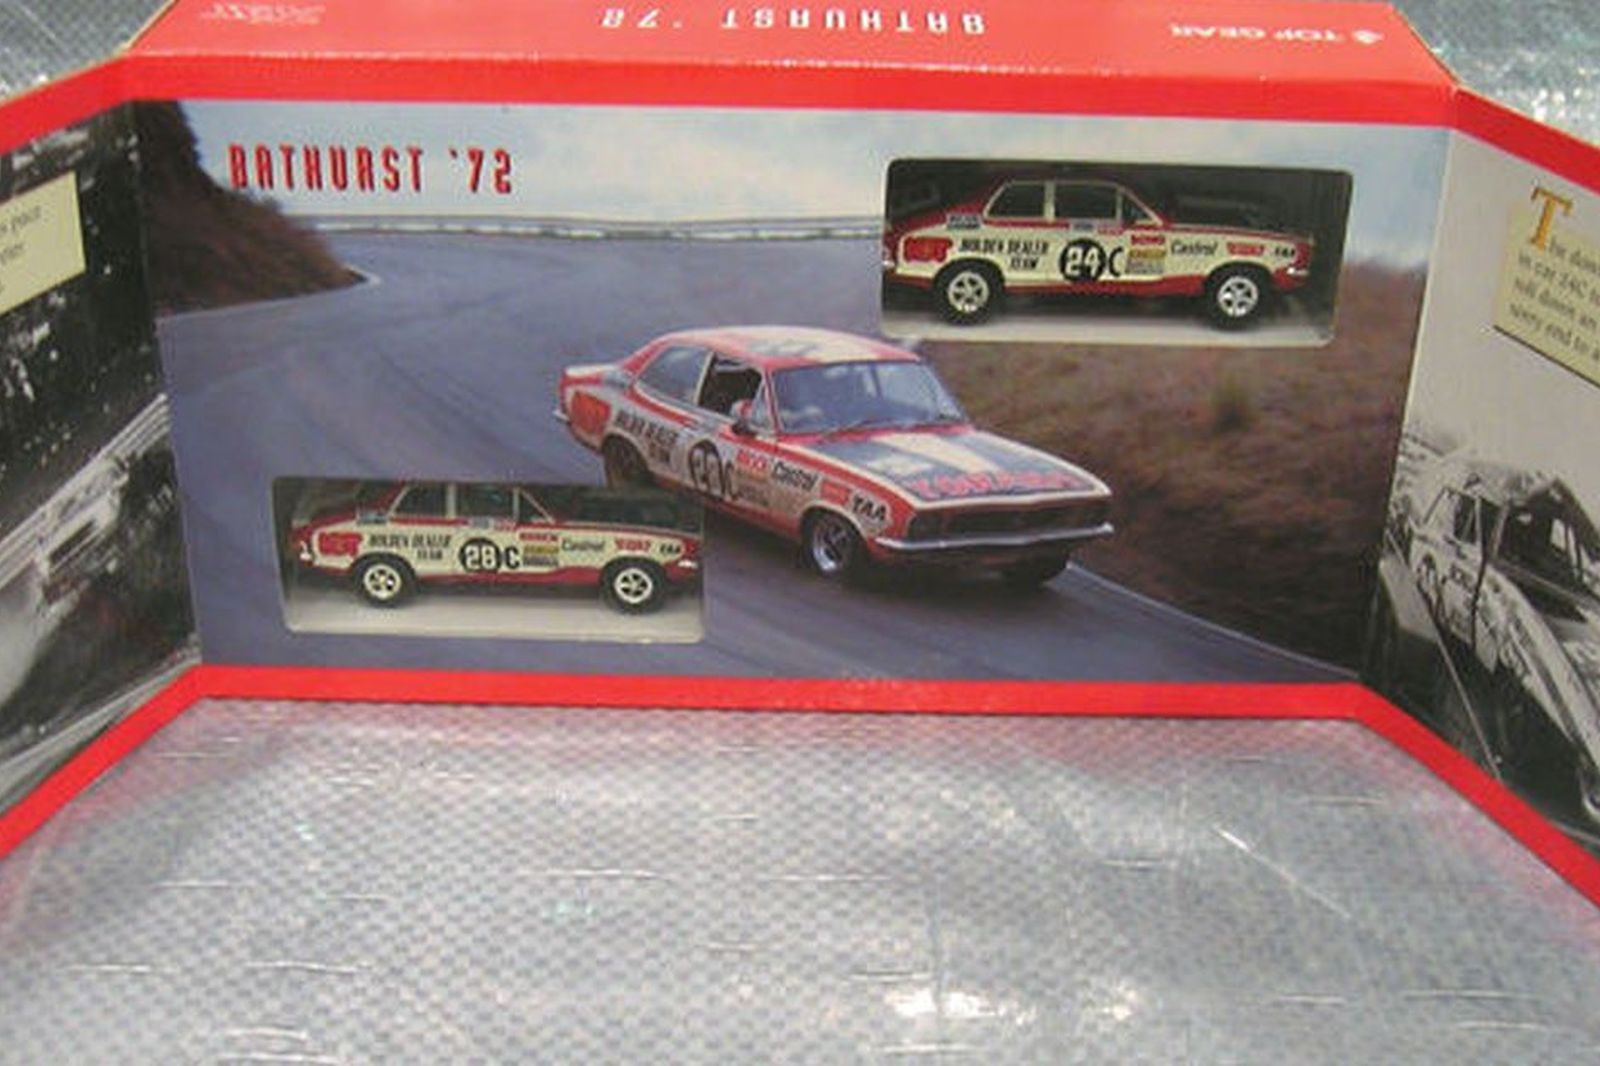 2 x Trax Models - GTR-XU1 LJ Torana Racing Set (1:43 Scale)